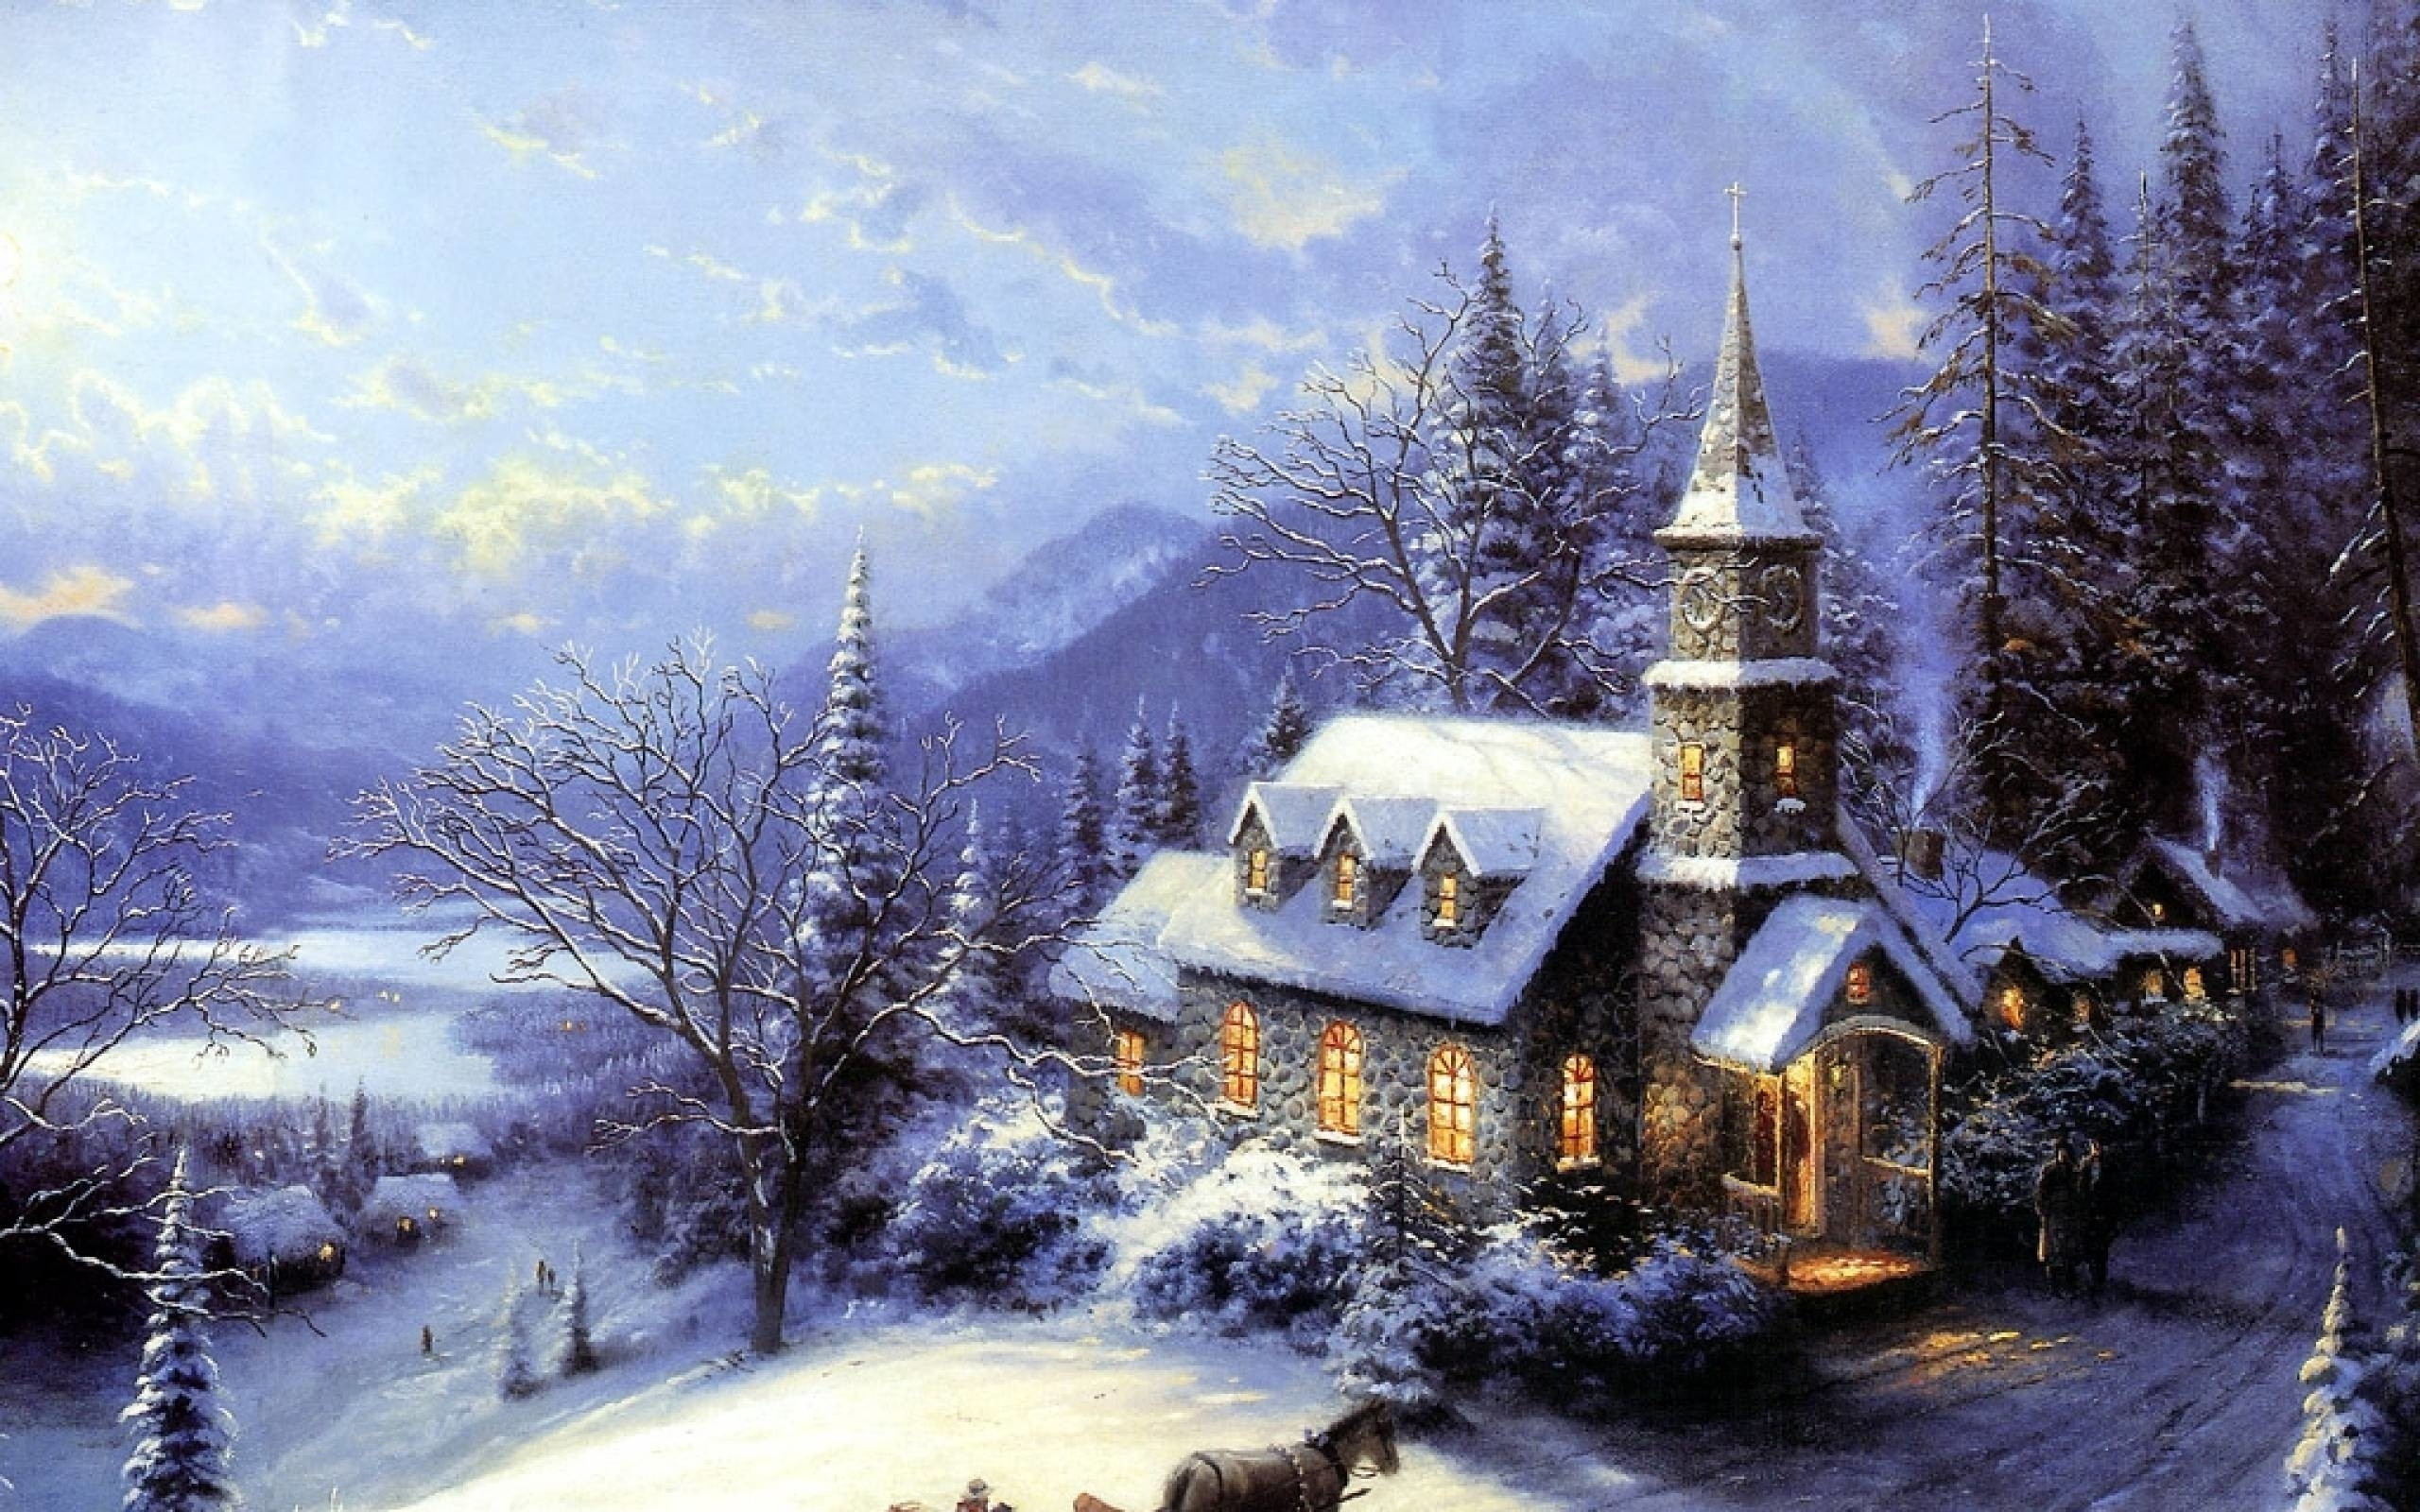 thomas kinkade winter wallpaper (58+ images)